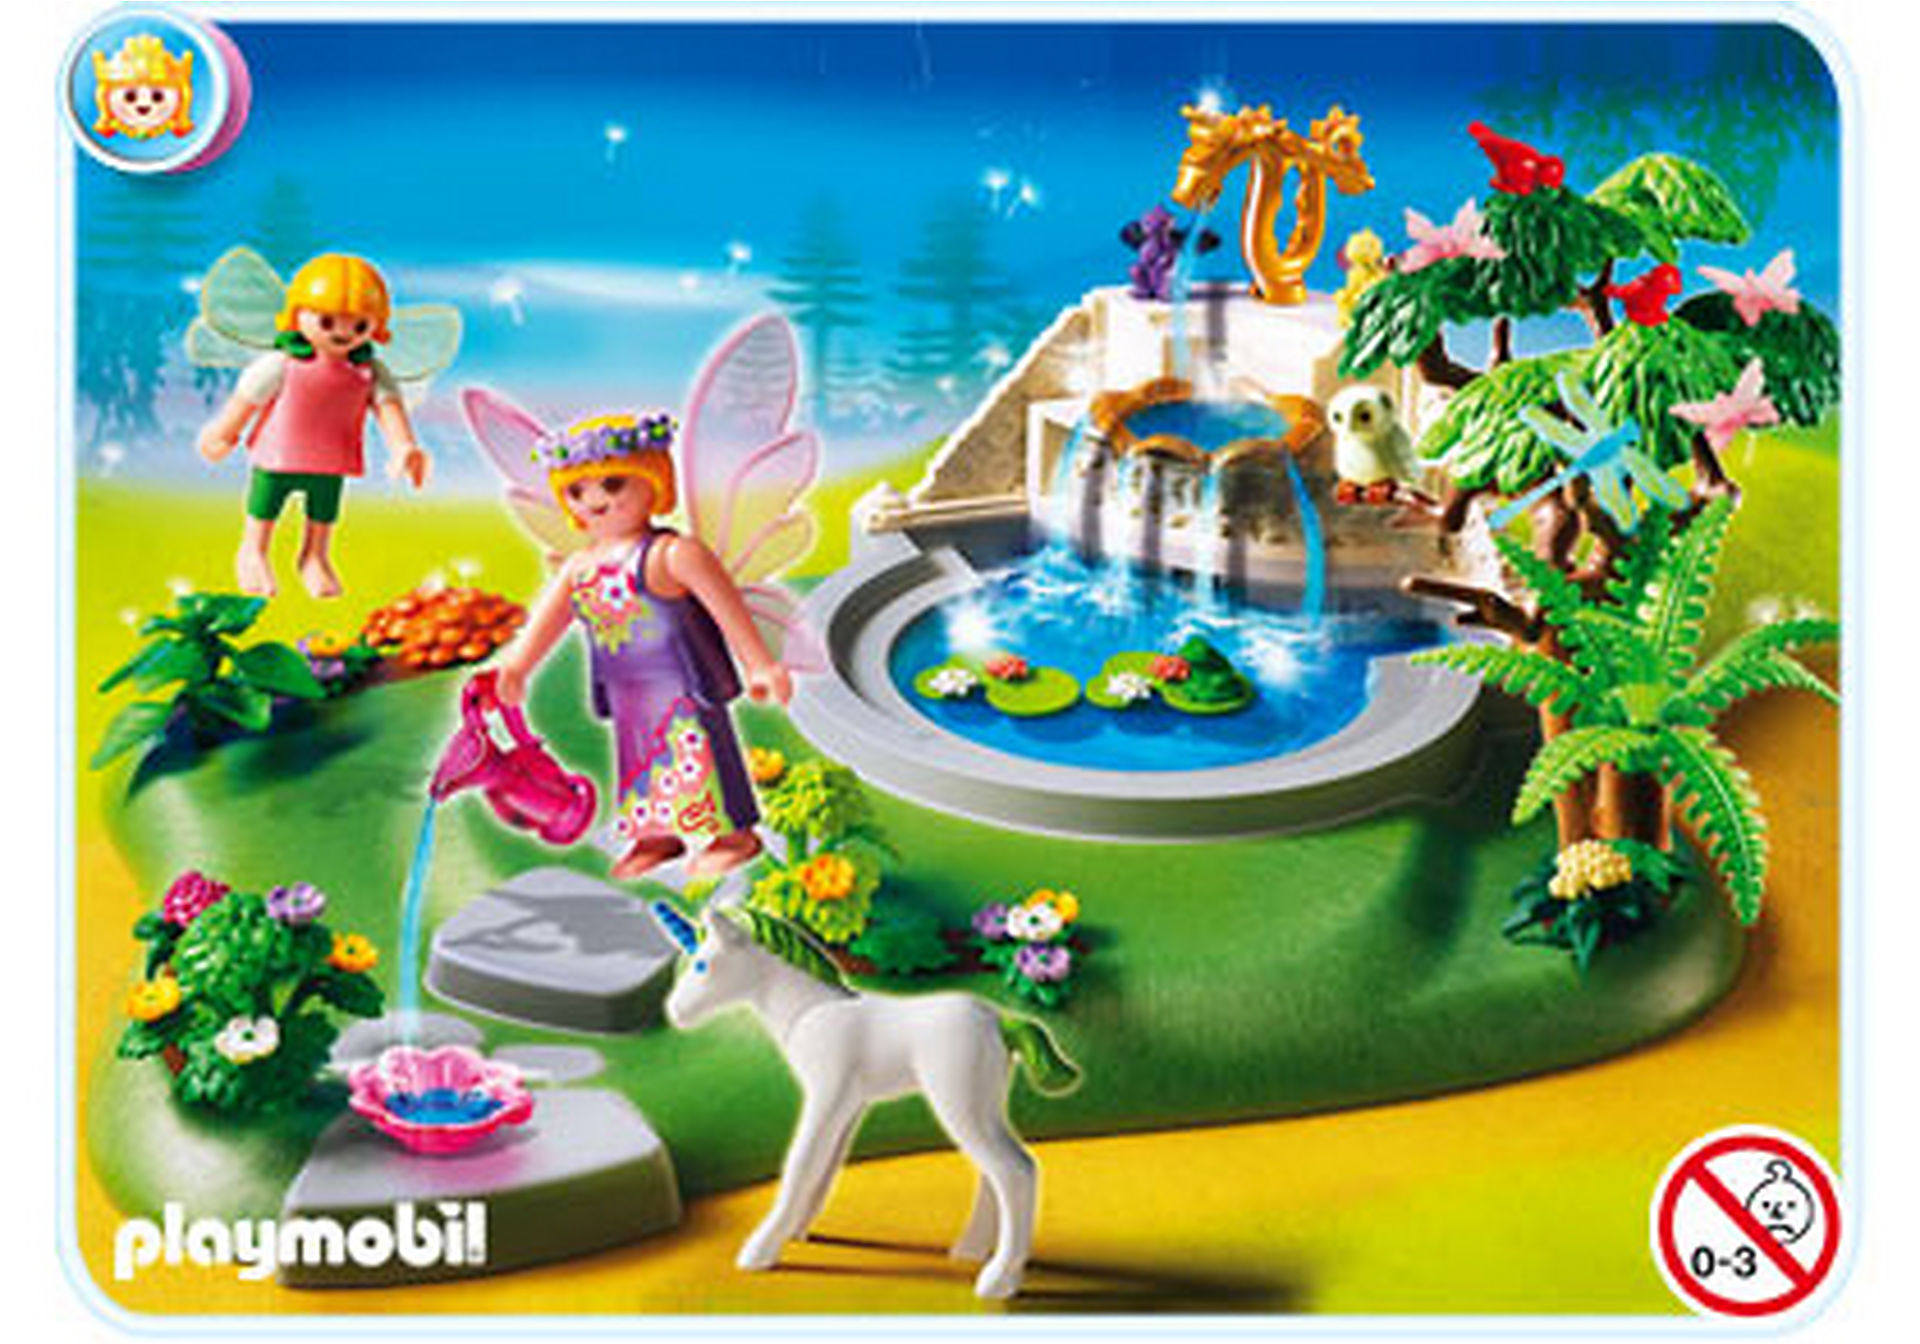 http://media.playmobil.com/i/playmobil/4008-A_product_detail/SuperSet Elfengarten